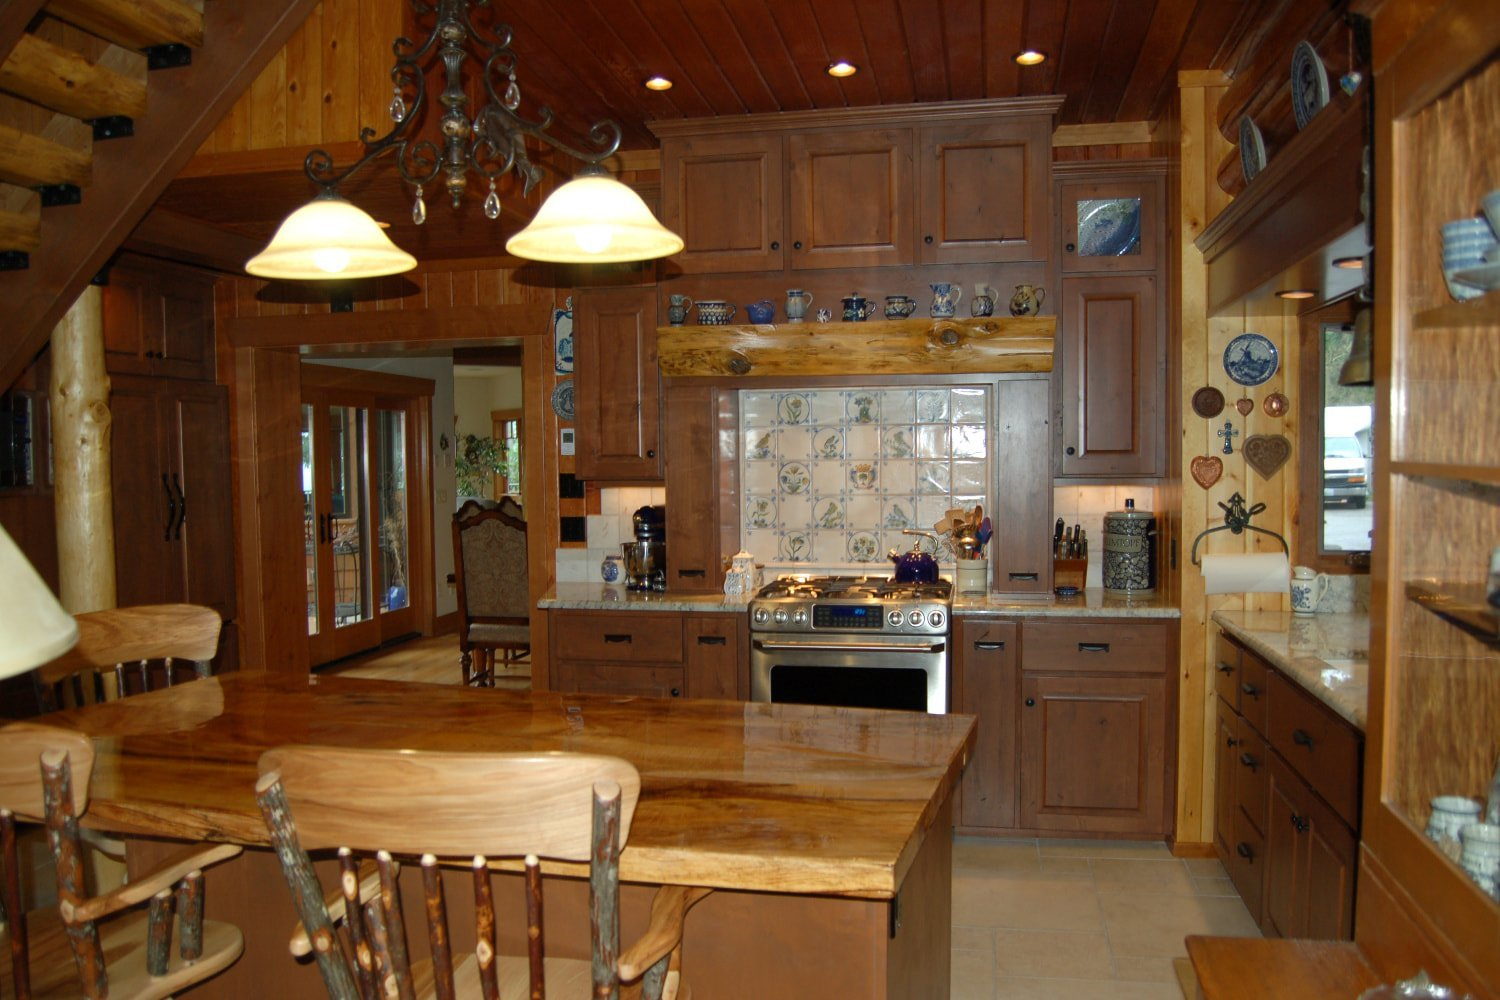 South Hill Kitchen Home Builder Remodel Puyallup WA | Mike Schwartz Construction